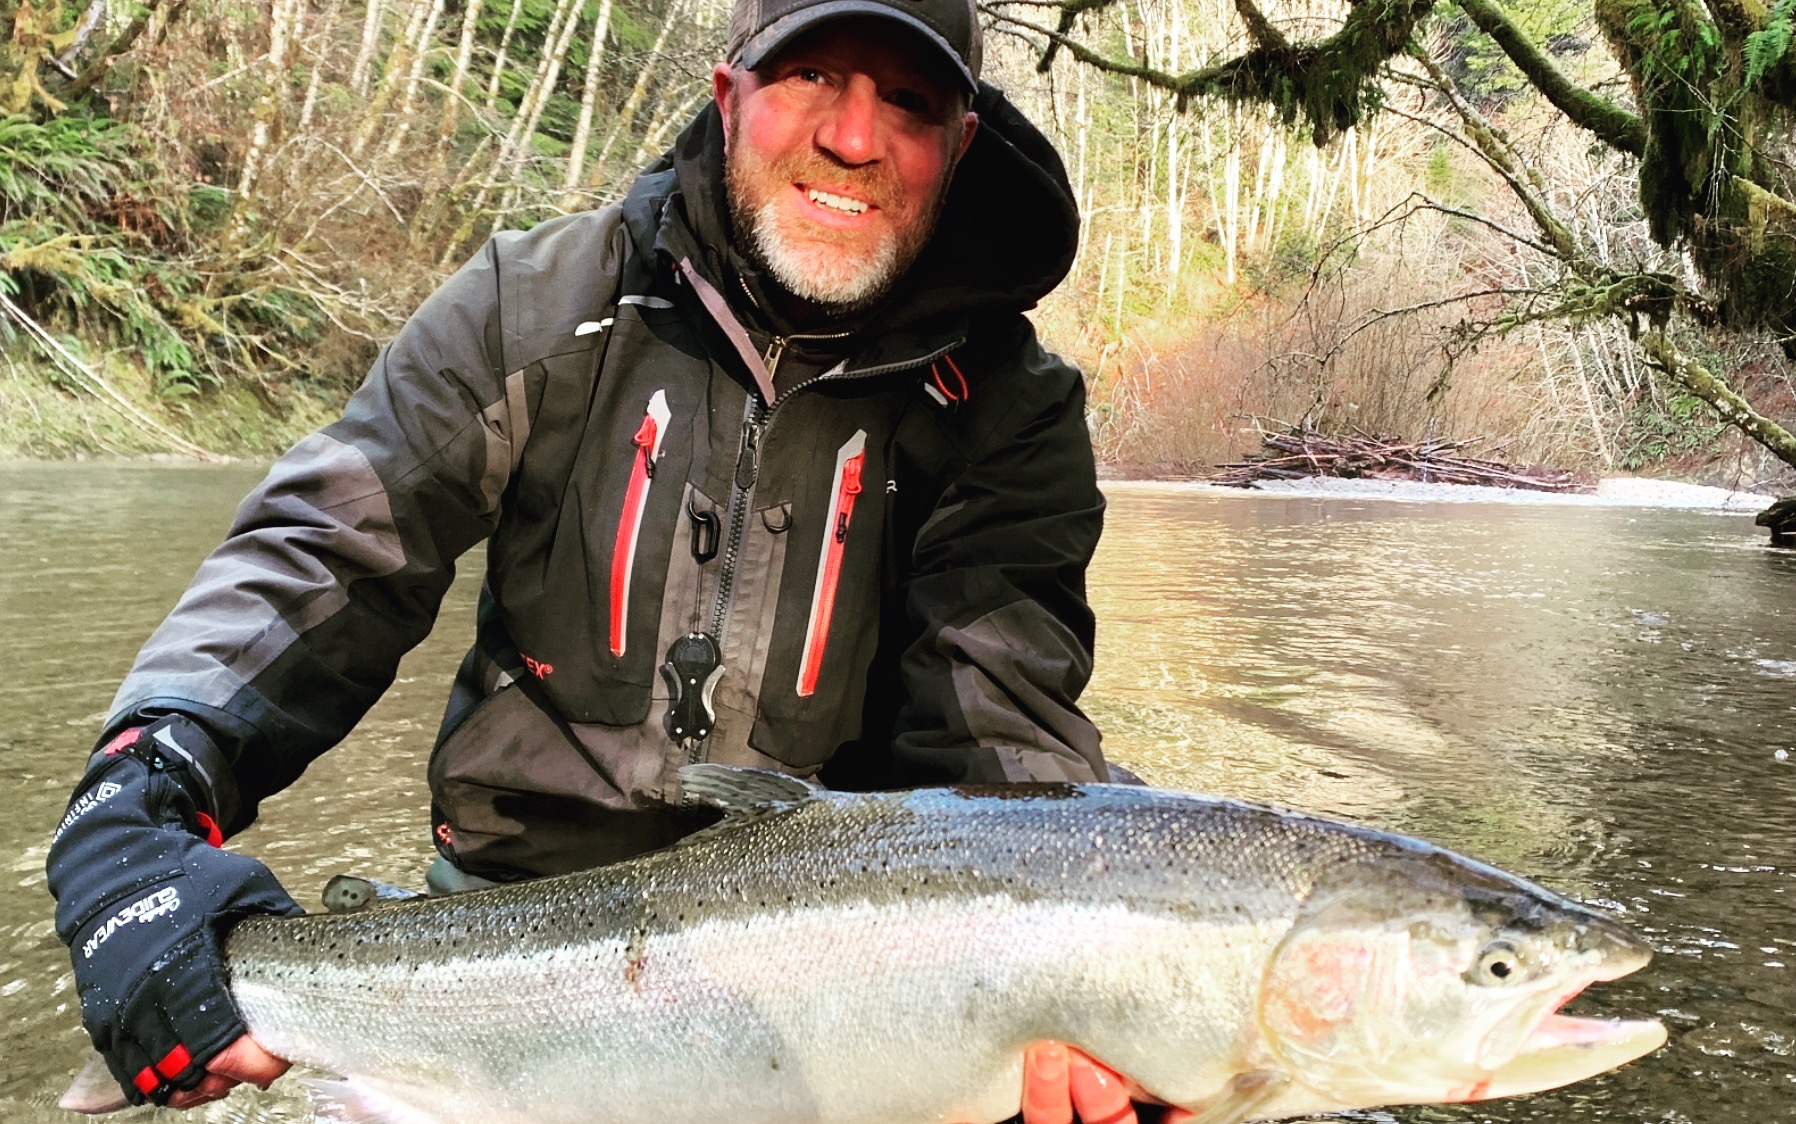 Bead Fishing for Winter Steelhead on Christmas Day